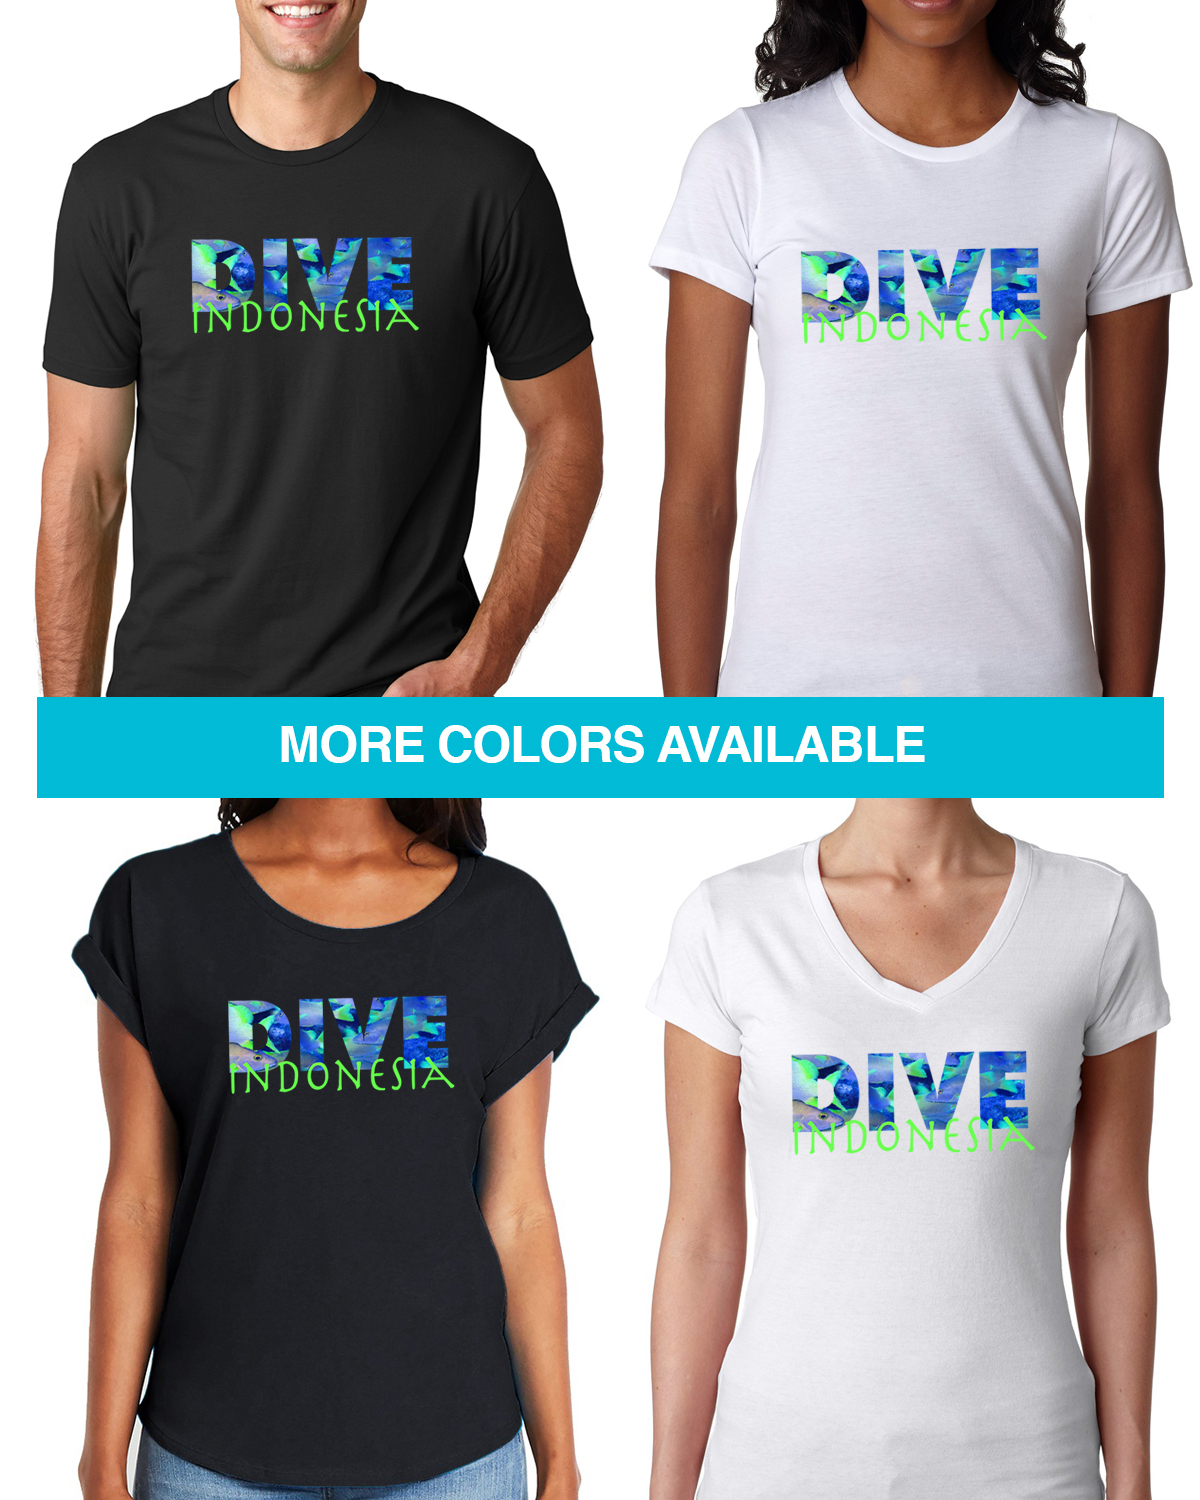 DIVE Indonesia Tees for Men & Women